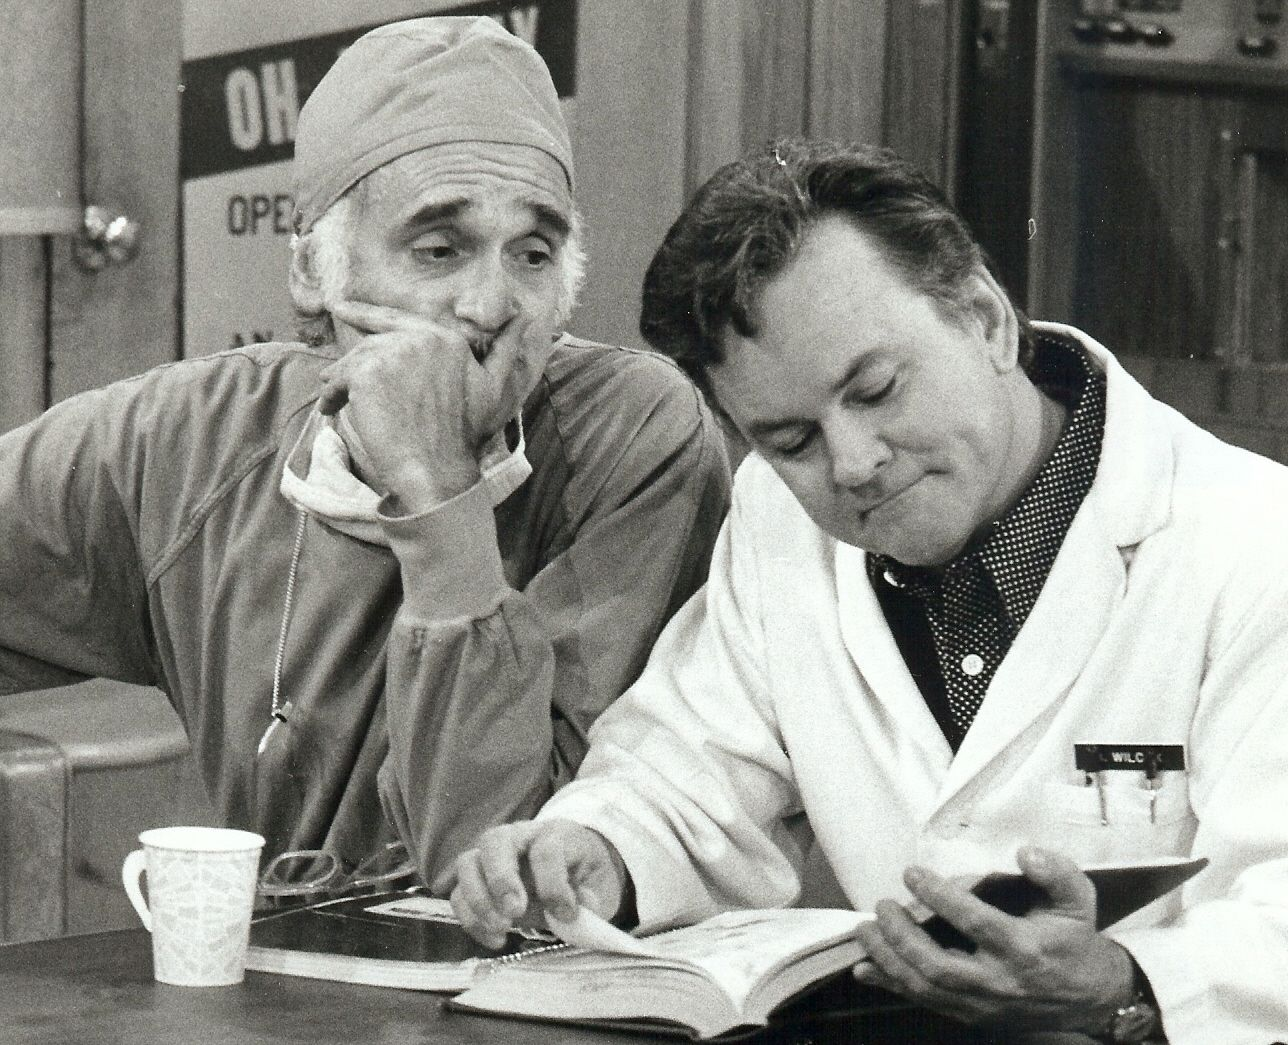 Bob Crane and Harold Gould in The Bob Crane Show (1975)